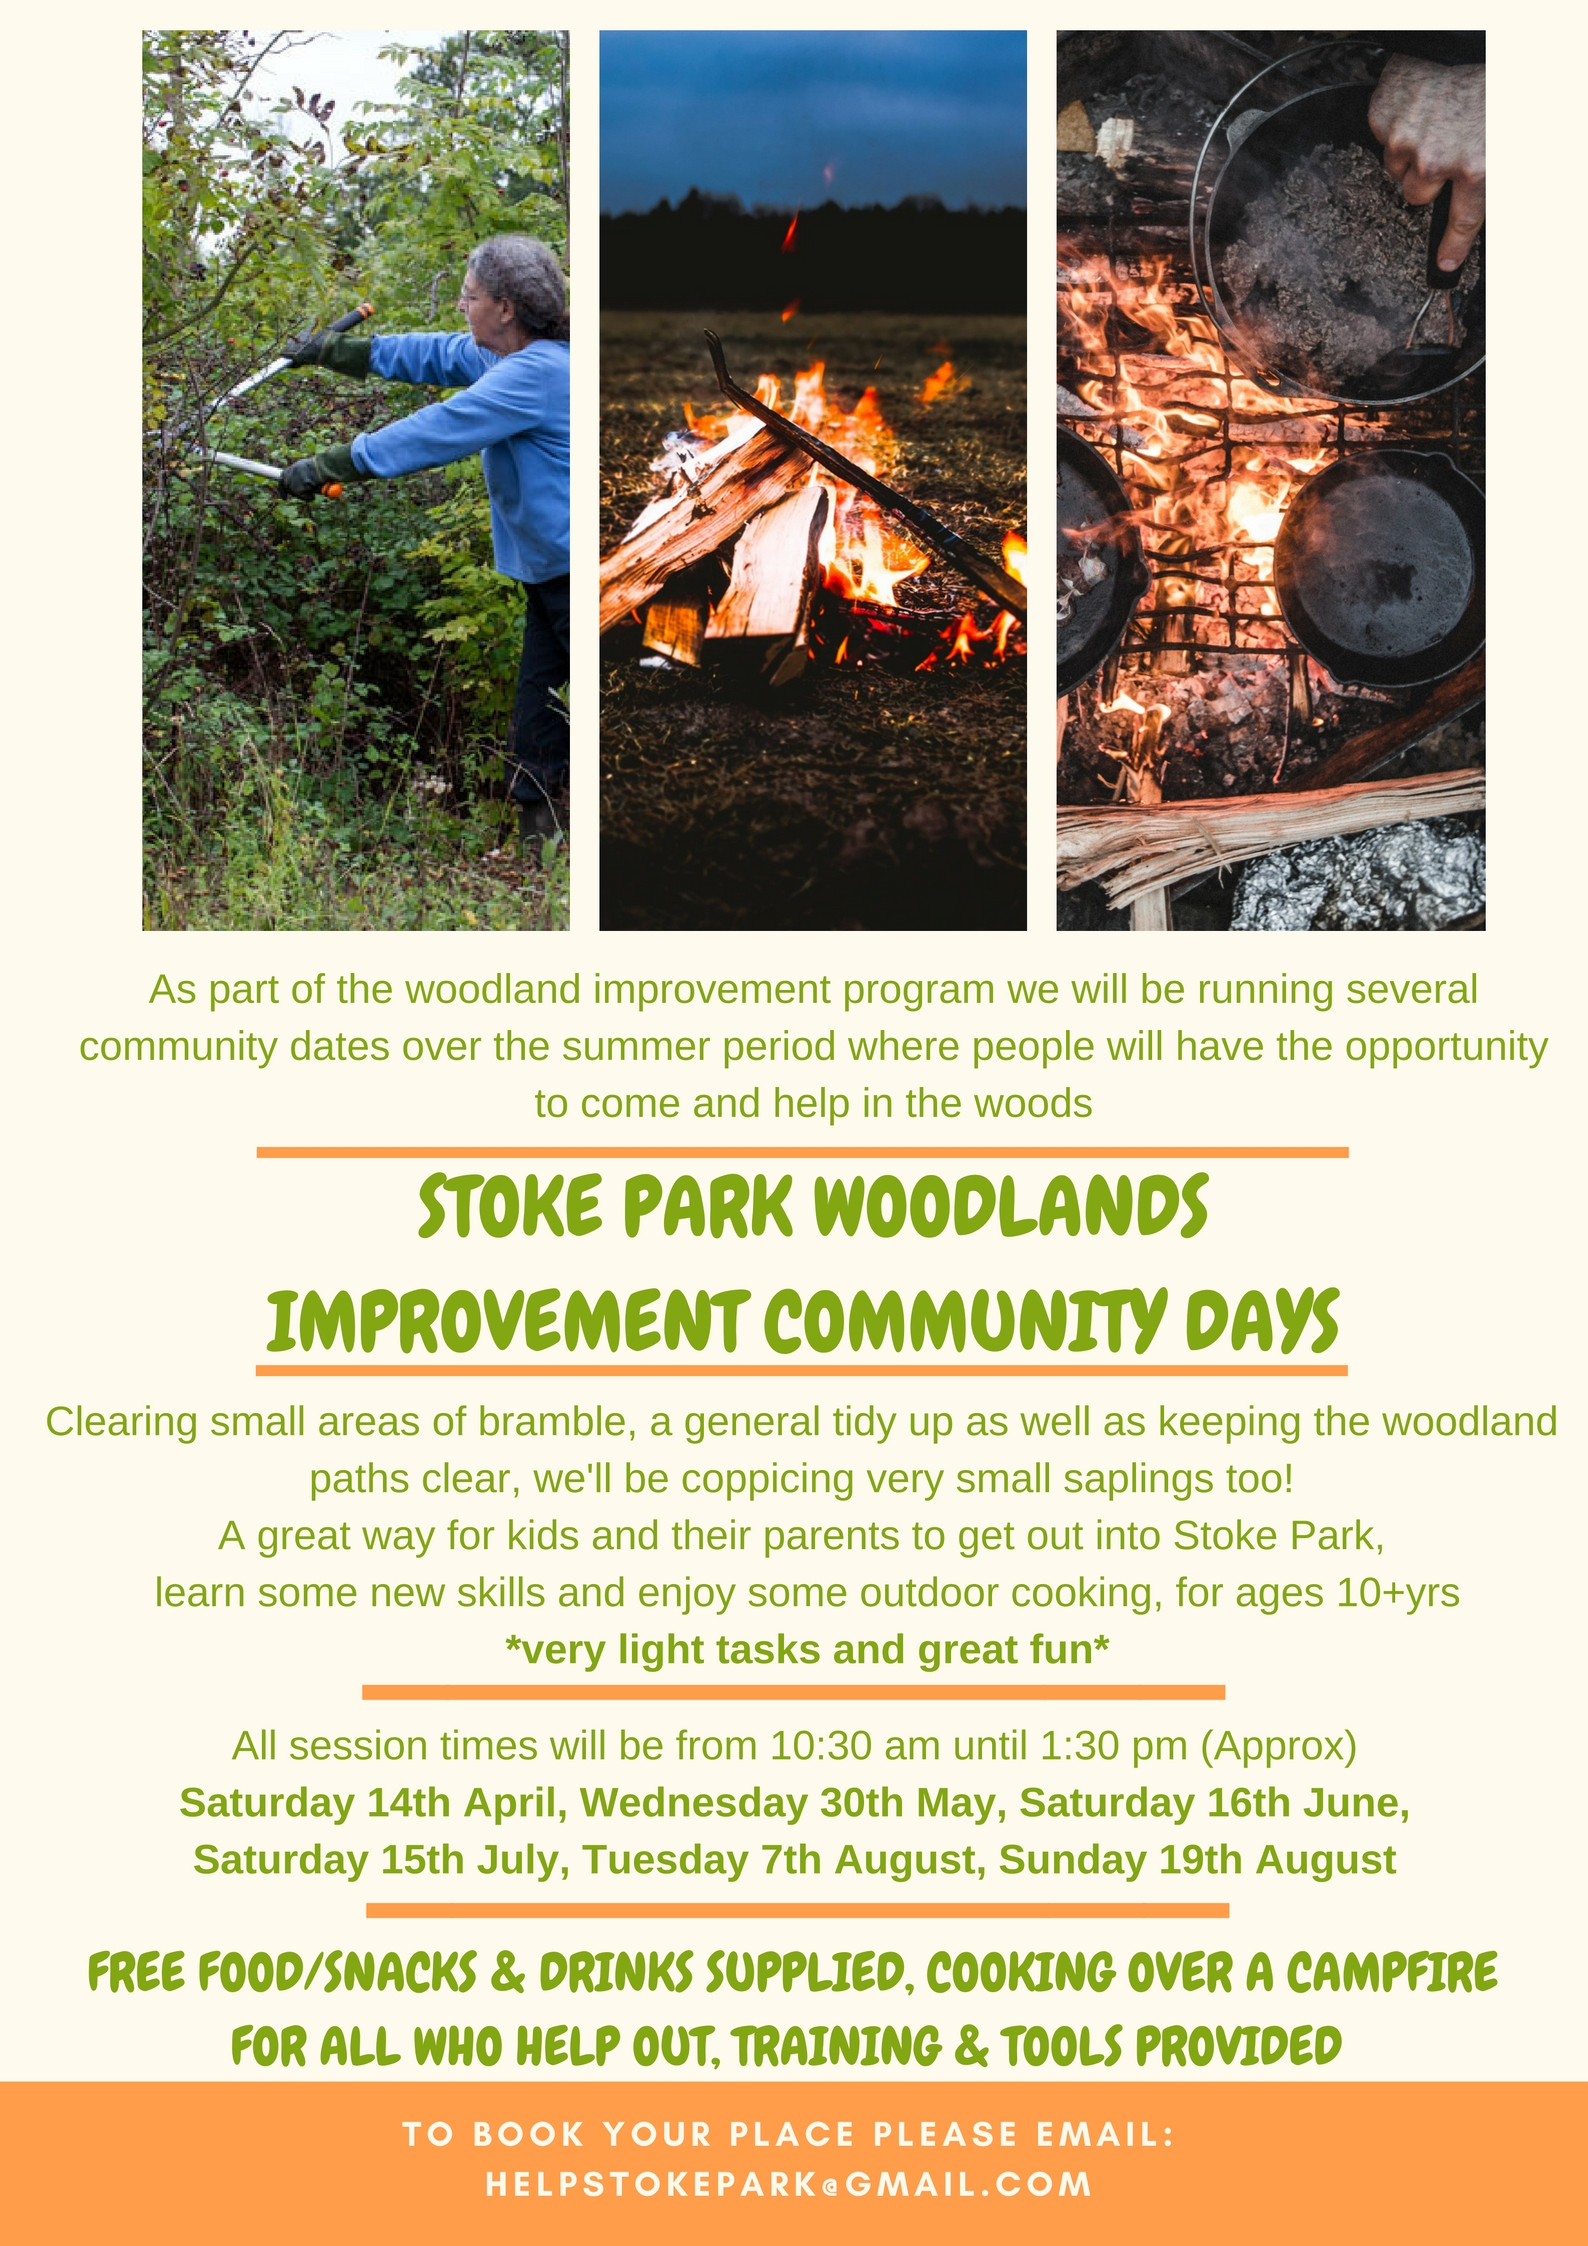 Stoke park woodlands improvement community days.jpg